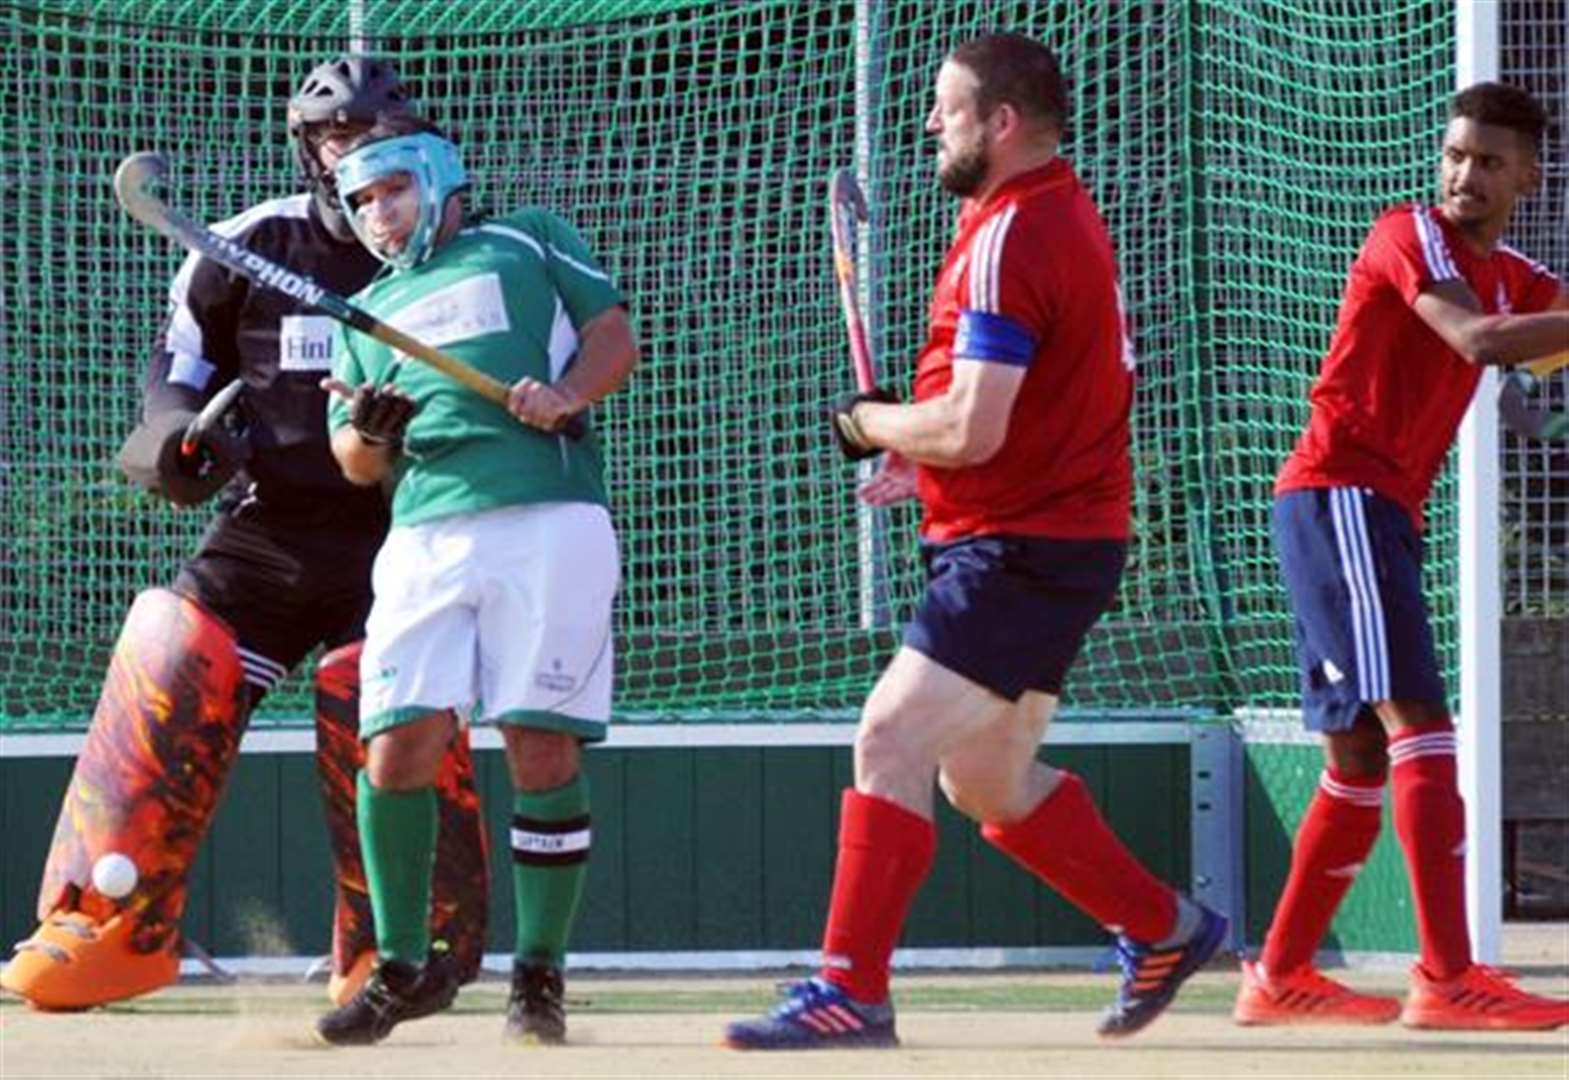 HOCKEY: Back to business in Dragons' den